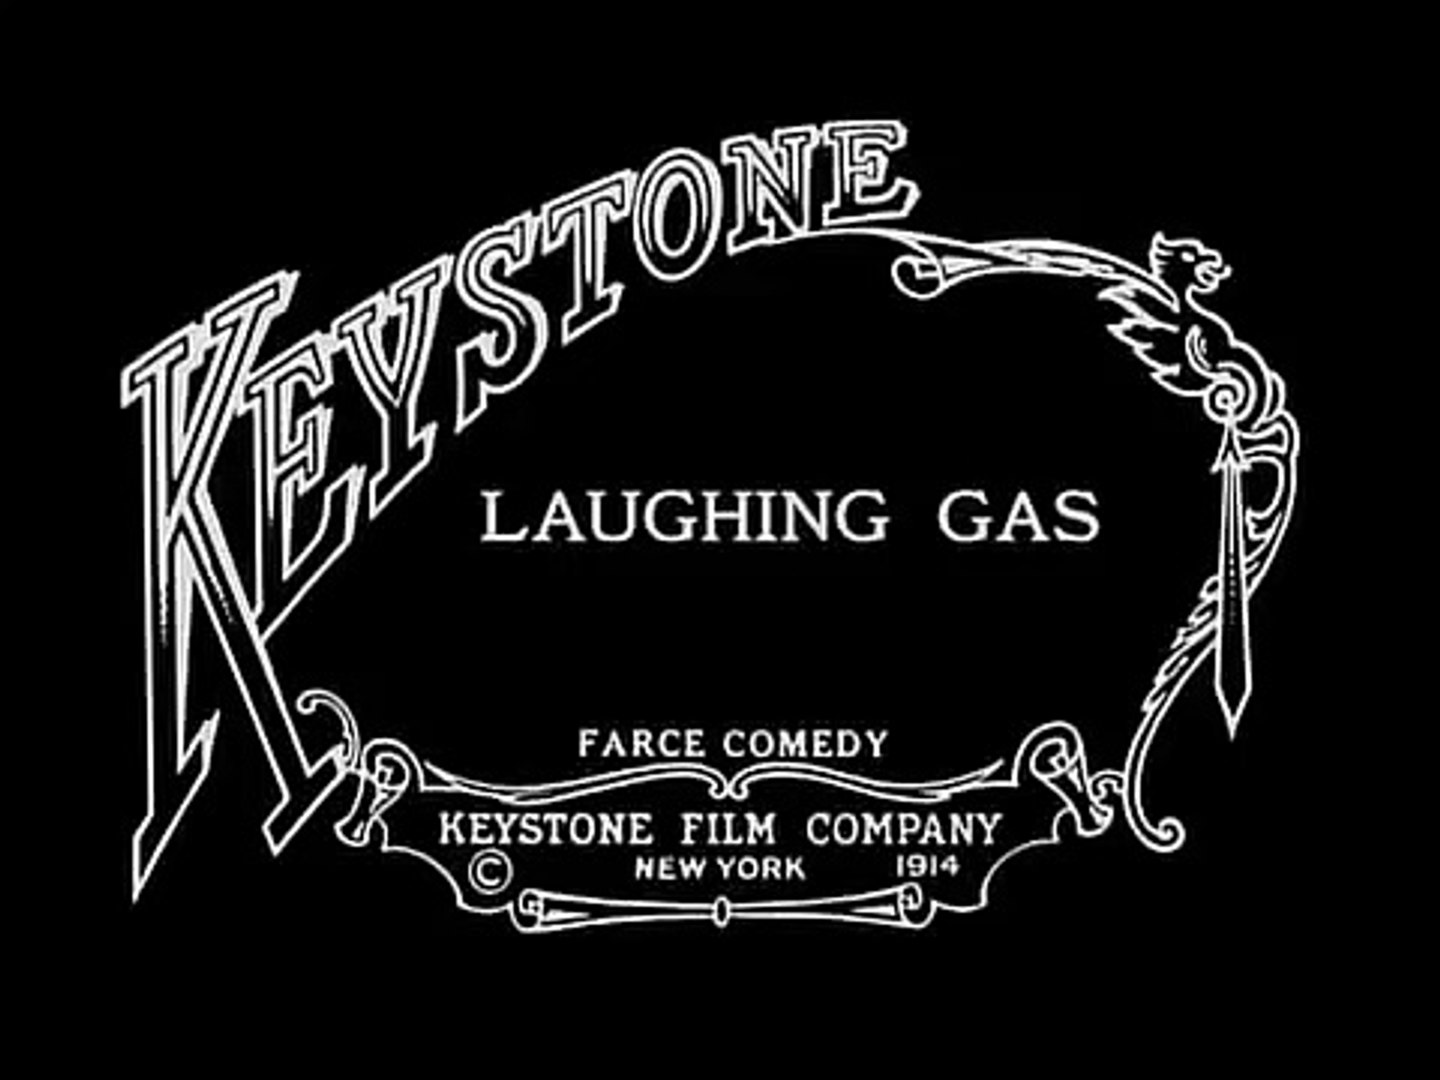 Charlie chaplin comedy video Laughing Gas 1914